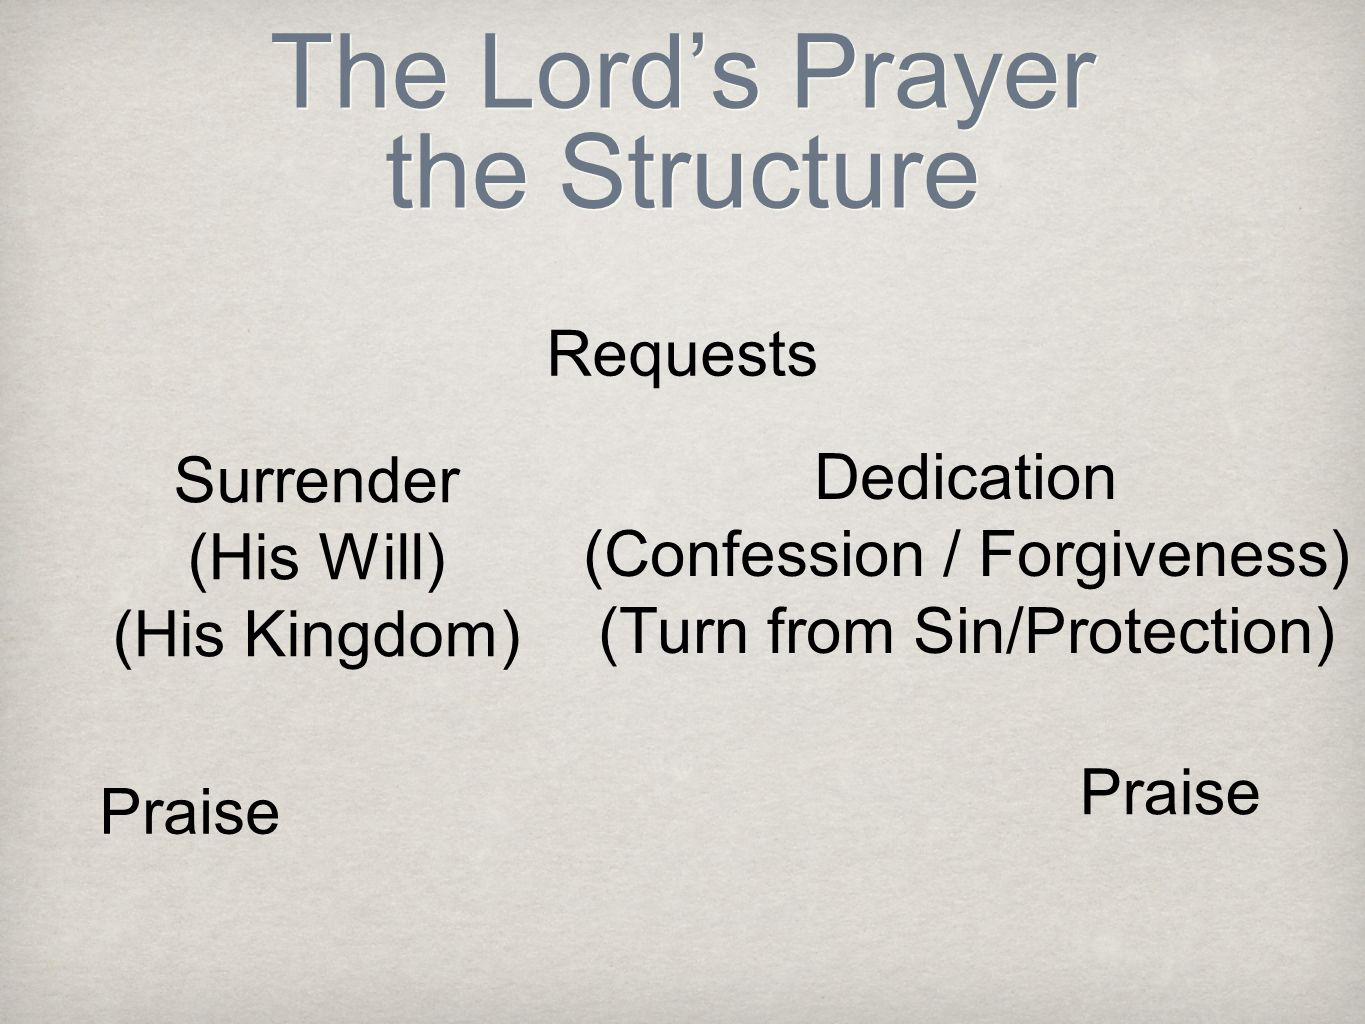 The Lord's Prayer the Structure